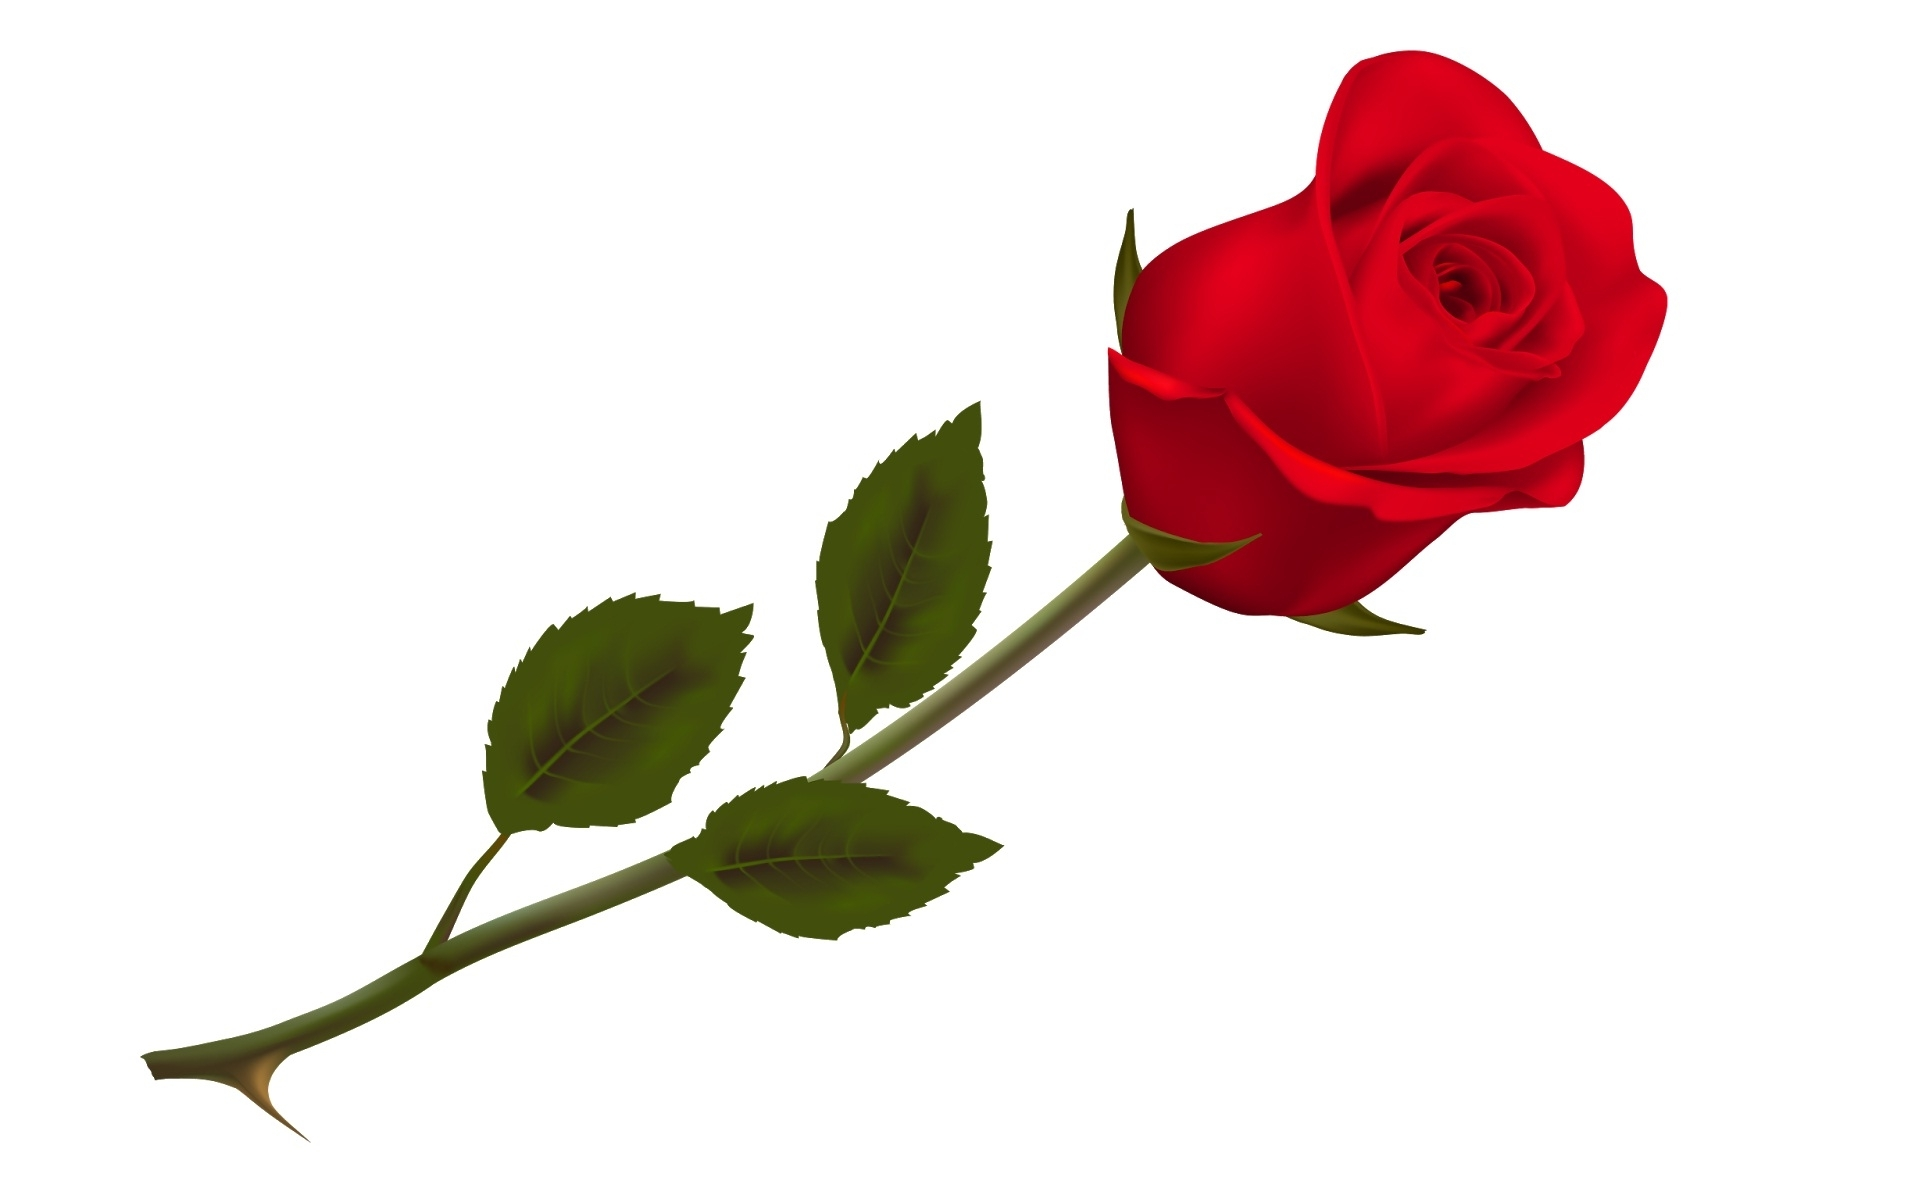 10 top single red rose picture full hd 1080p for pc background